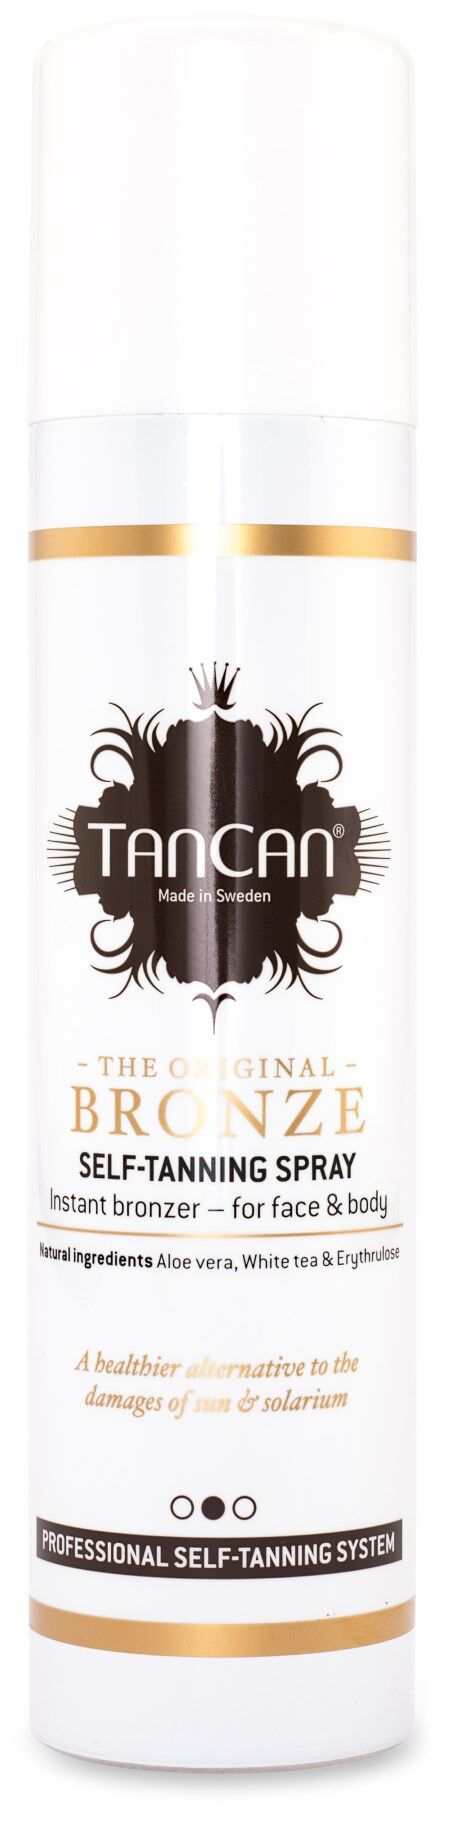 tancan_bronze_self_tanning_spray_30139_x8